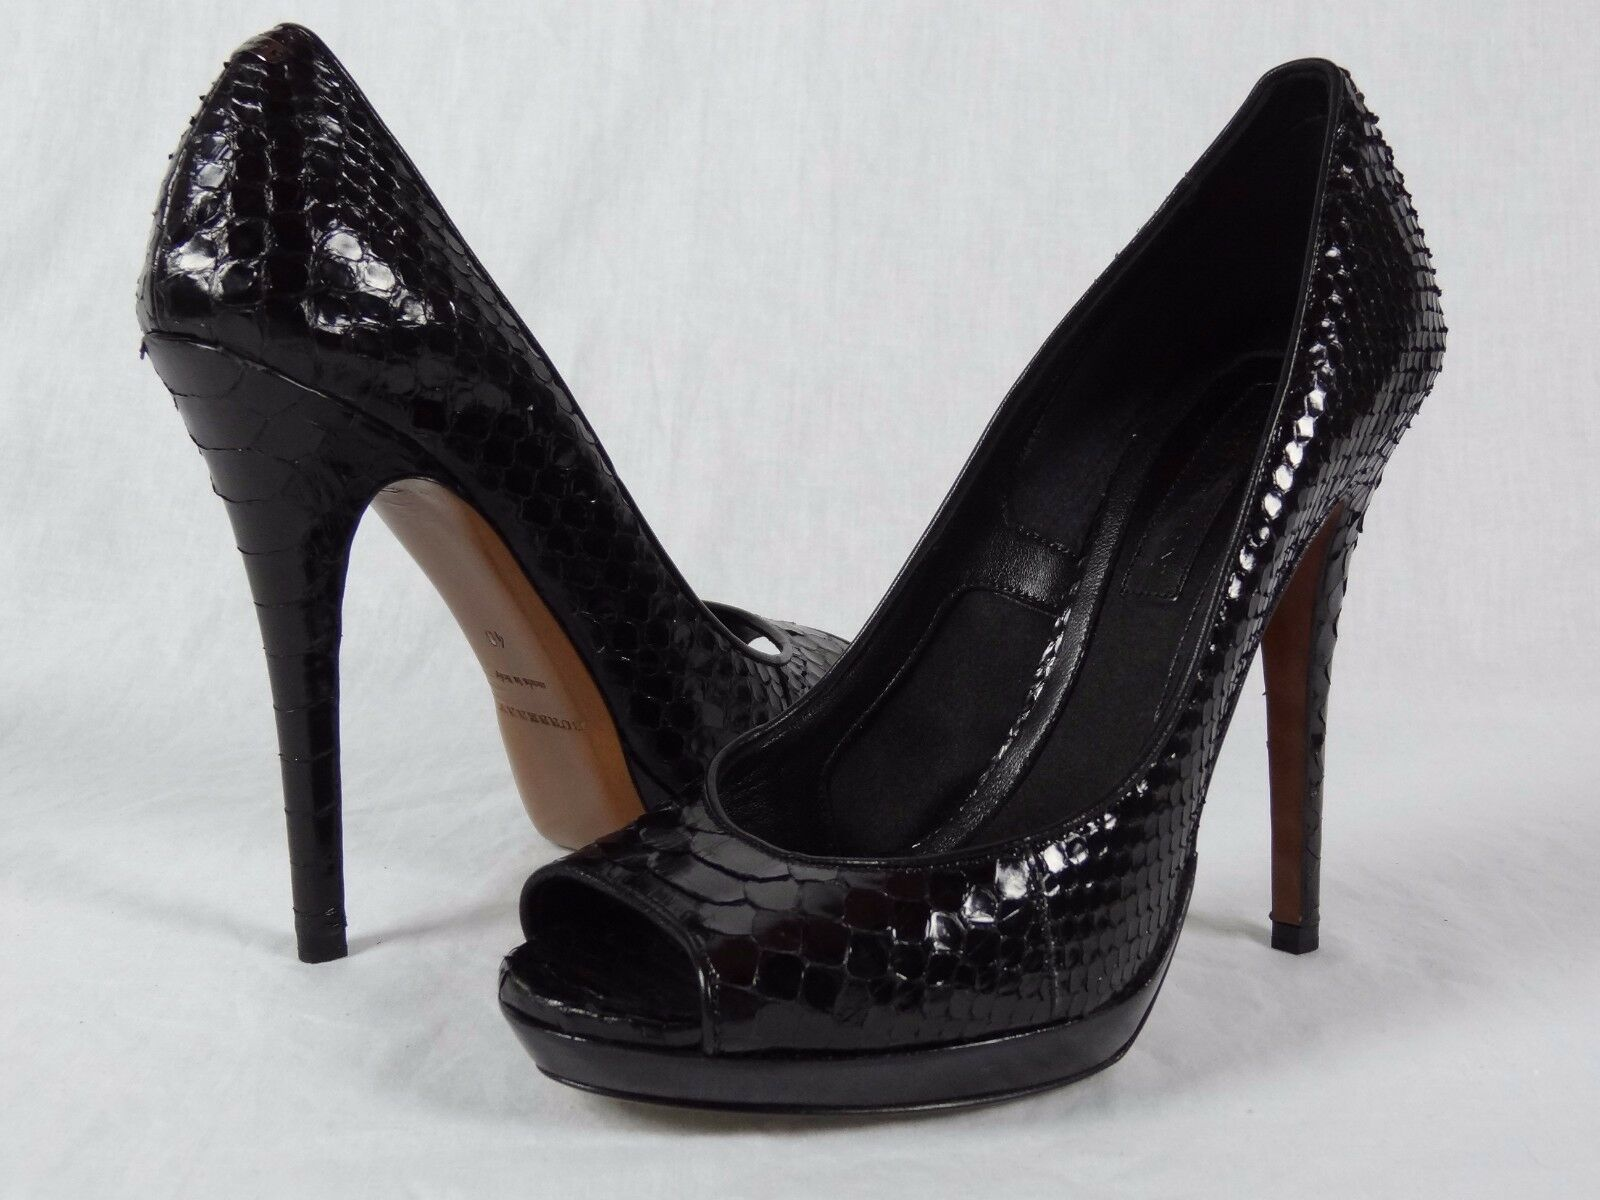 795 NIB Womens Burberry London Python Exotic115 Pump Black Eur 40 US 9.5 10